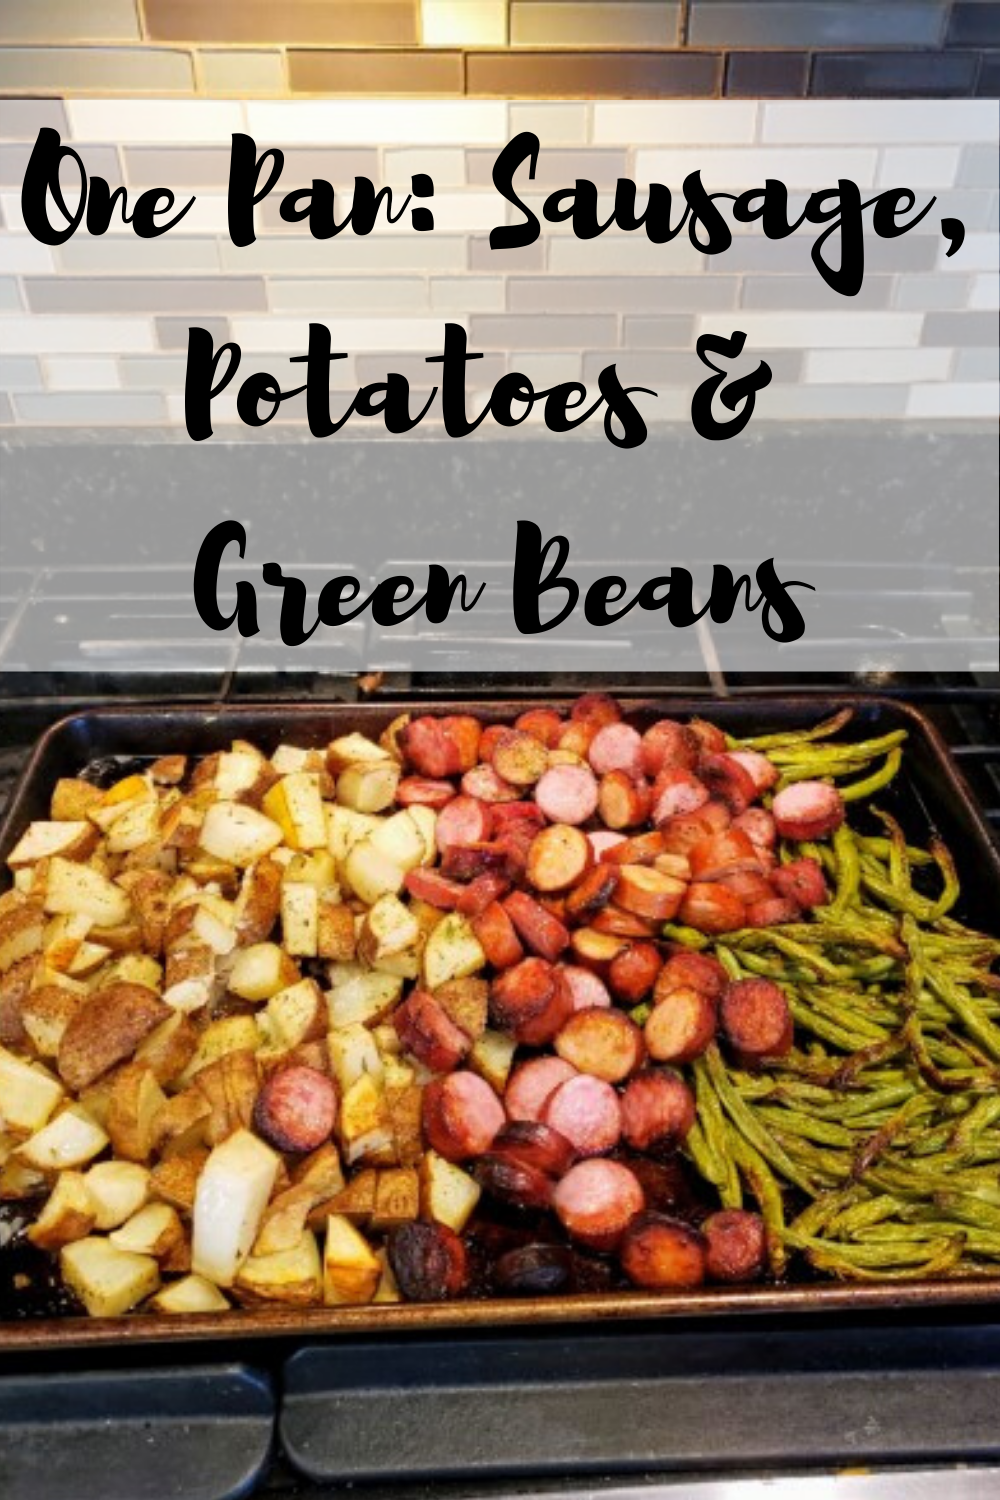 Recipe: One Pan Sausage, Potatoes and Green Beans